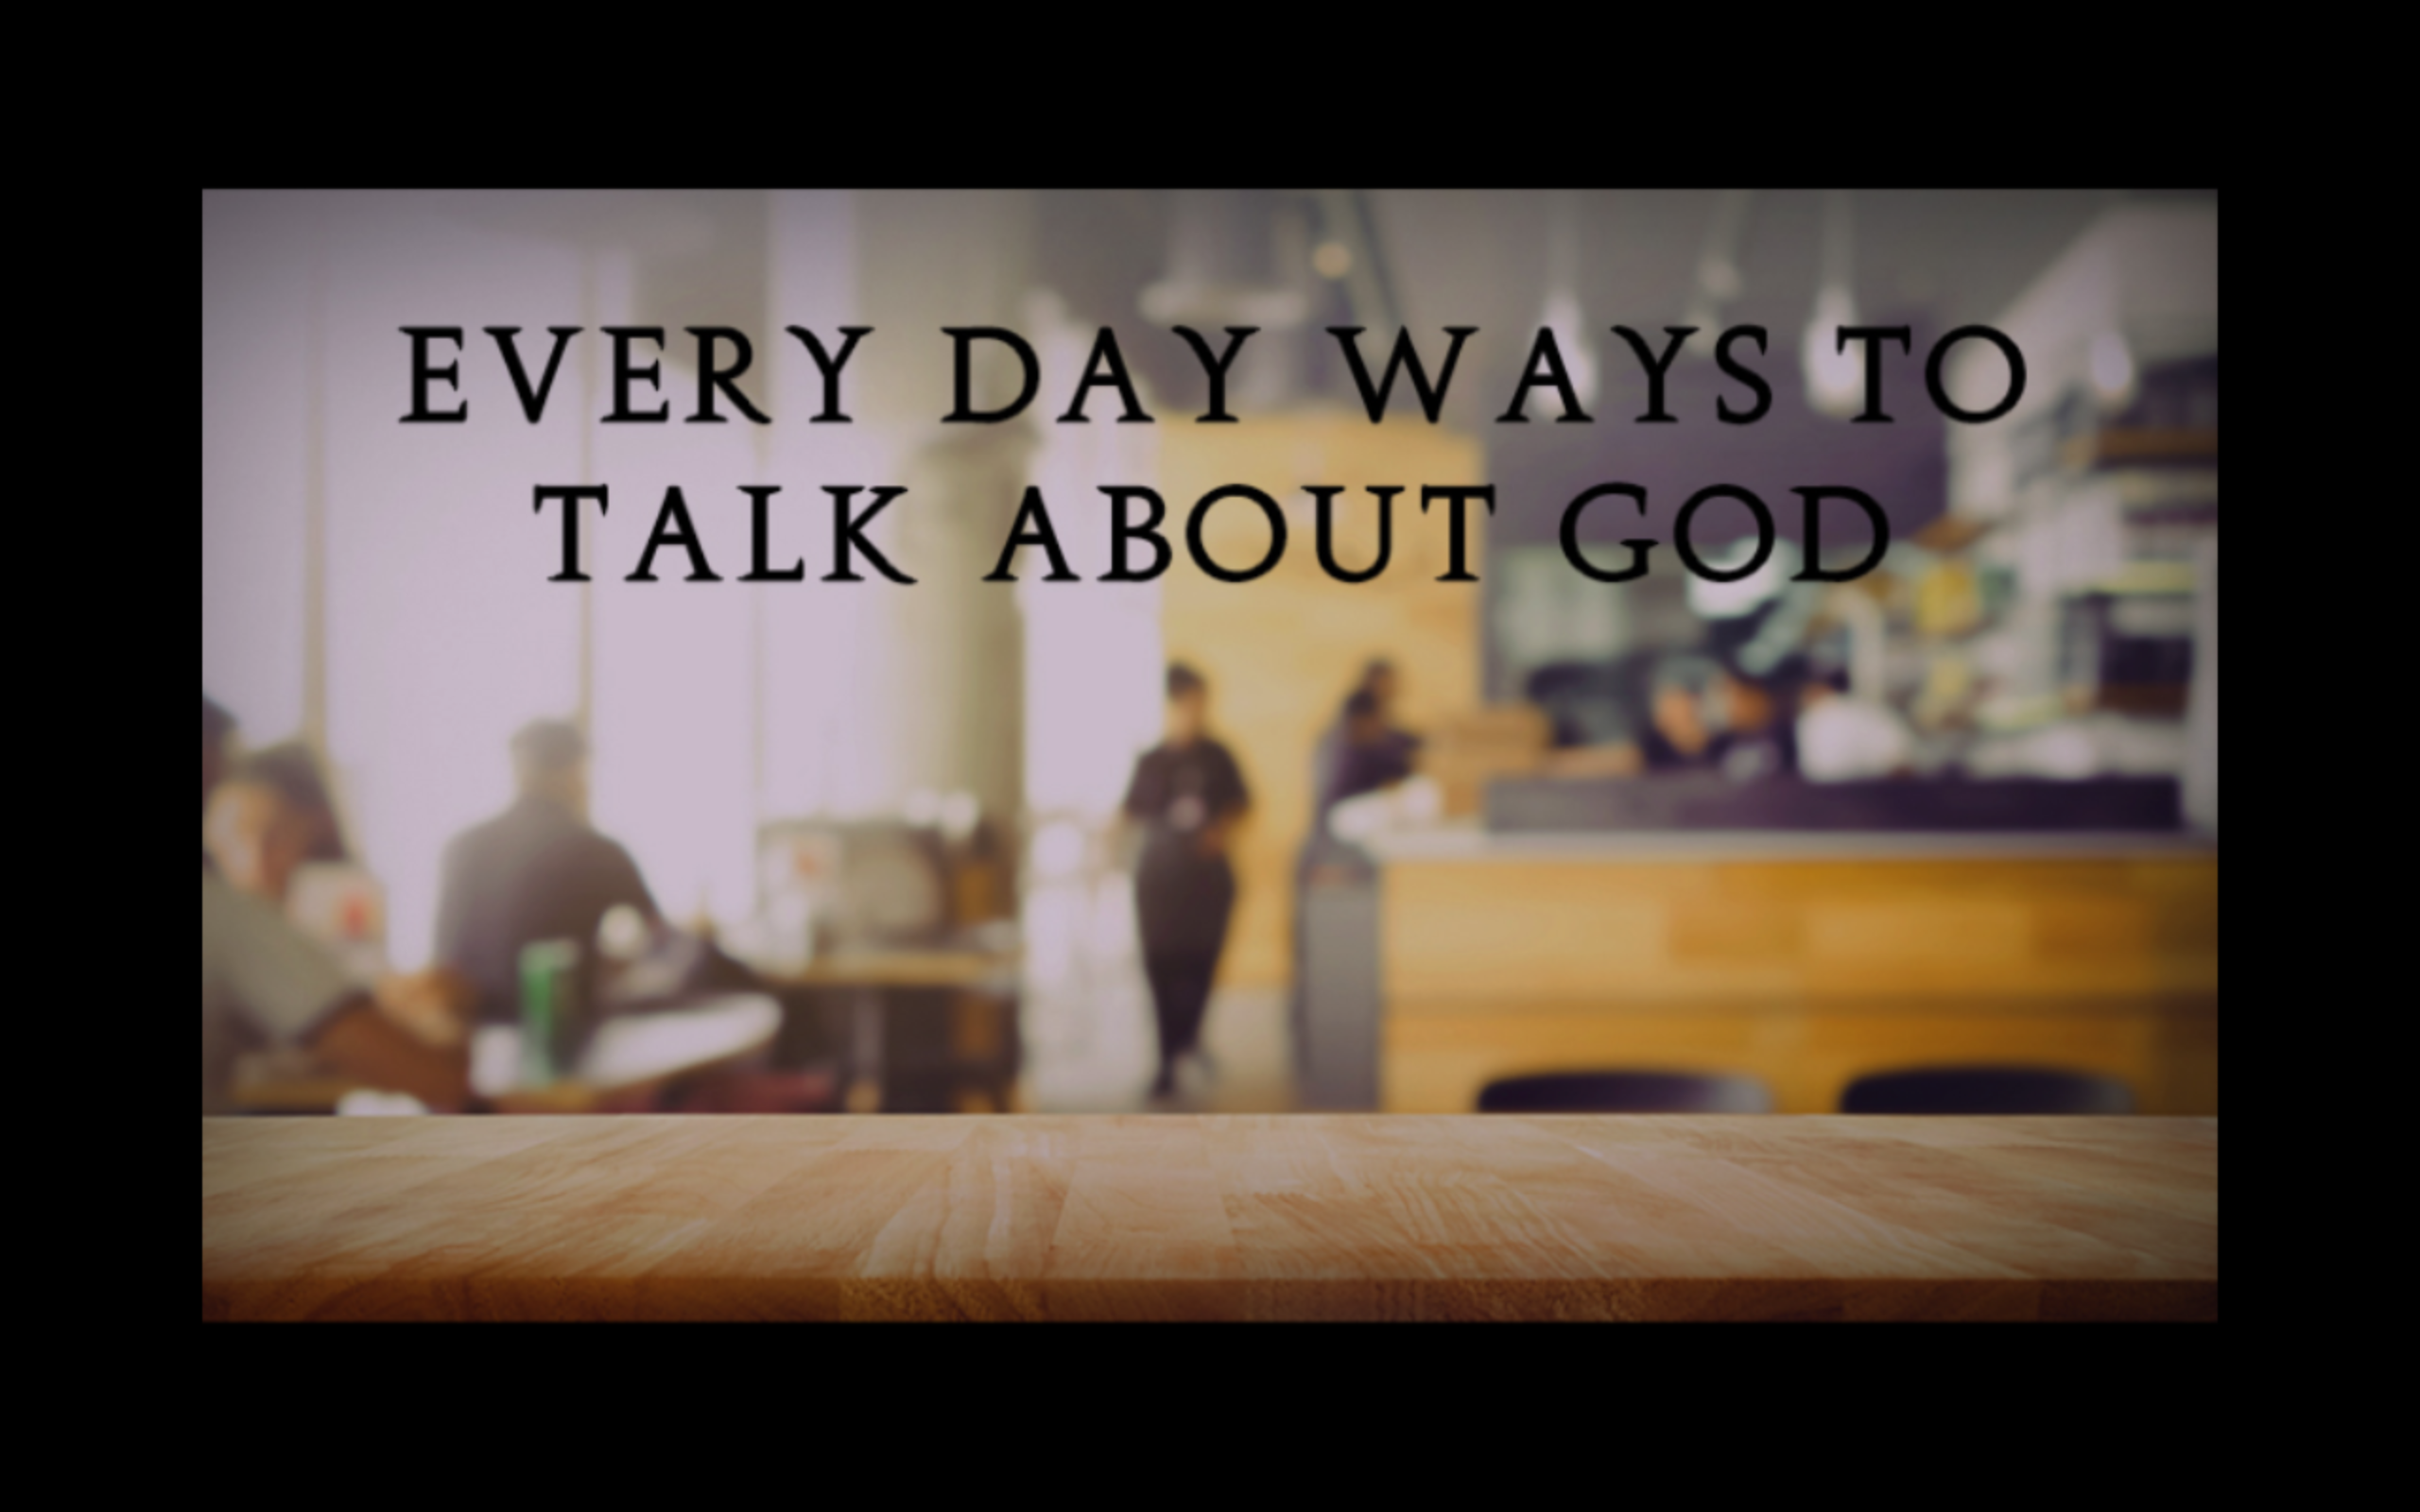 Everyday Ways to Talk About God